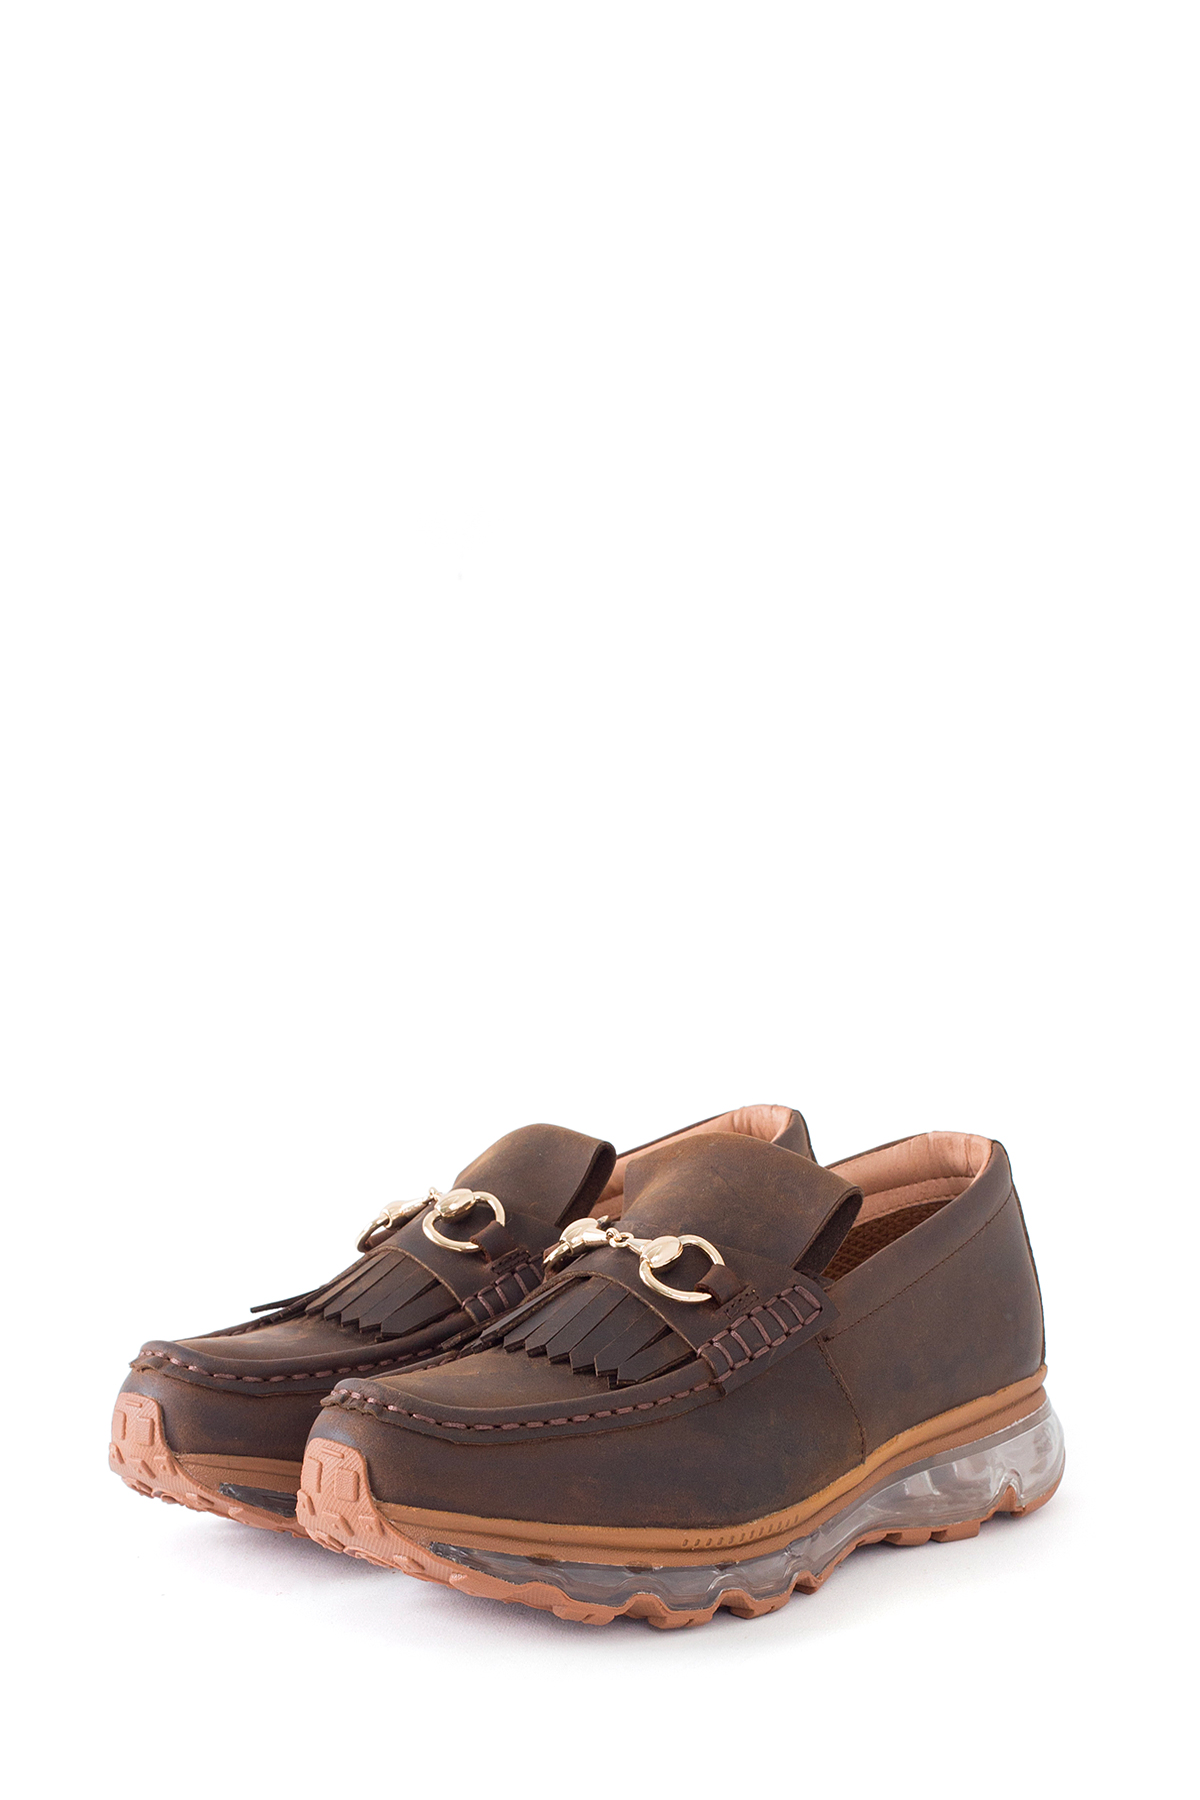 Tomo & Co. : Loafer Trainer (Brown)